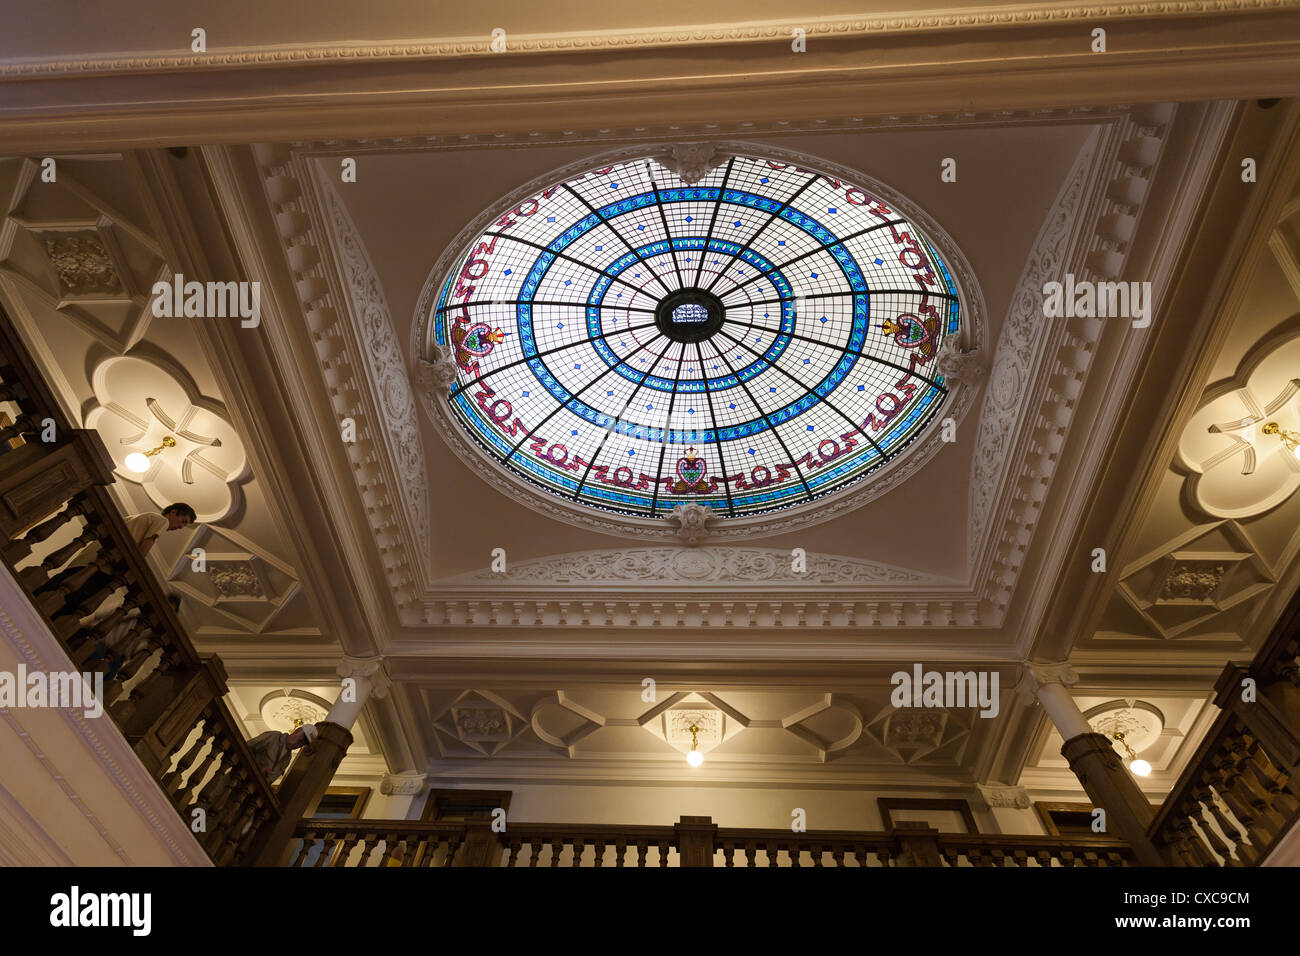 Stained Glass Dome Skylight at Boldt Castle and balcony. Brennan Stained Glass Studio of Syracuse NY completed this - Stock Image